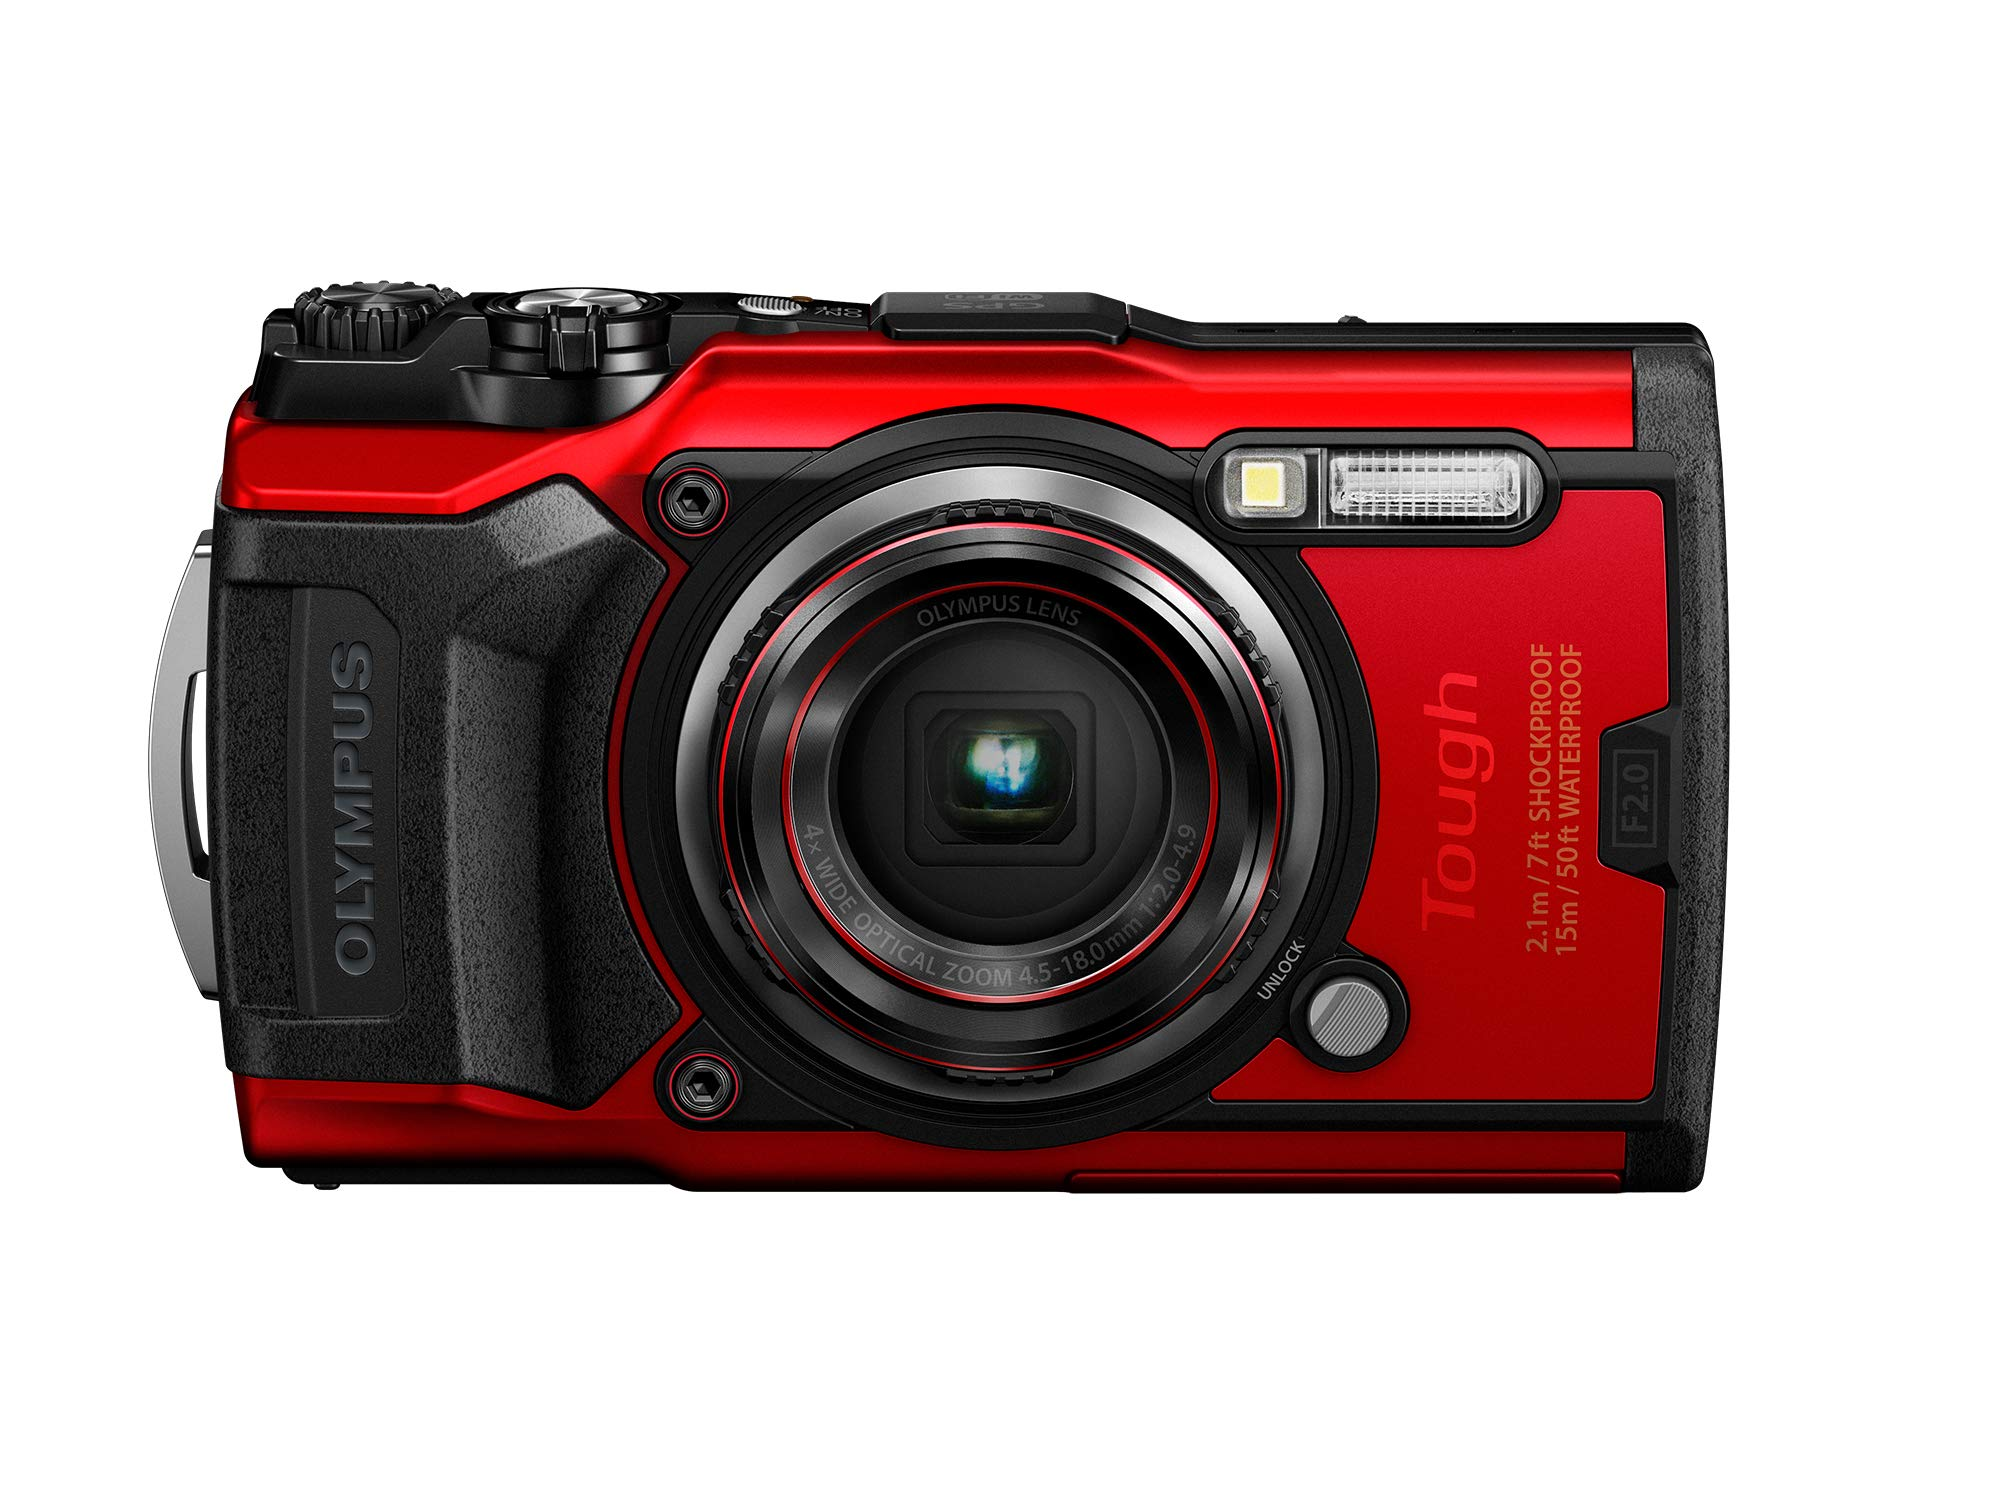 olympus-tough-tg-6-waterproof-camera-red